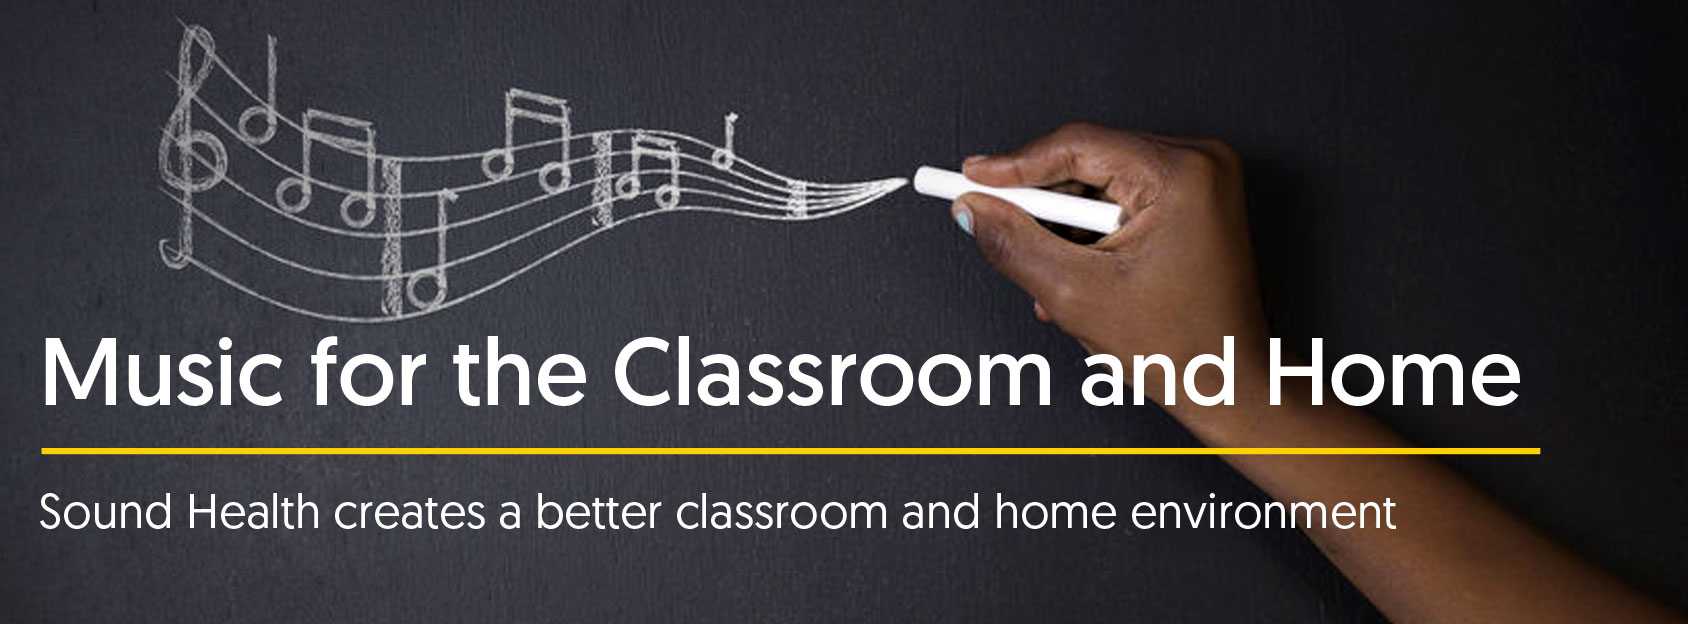 music-for-the-classroom-home-jpg